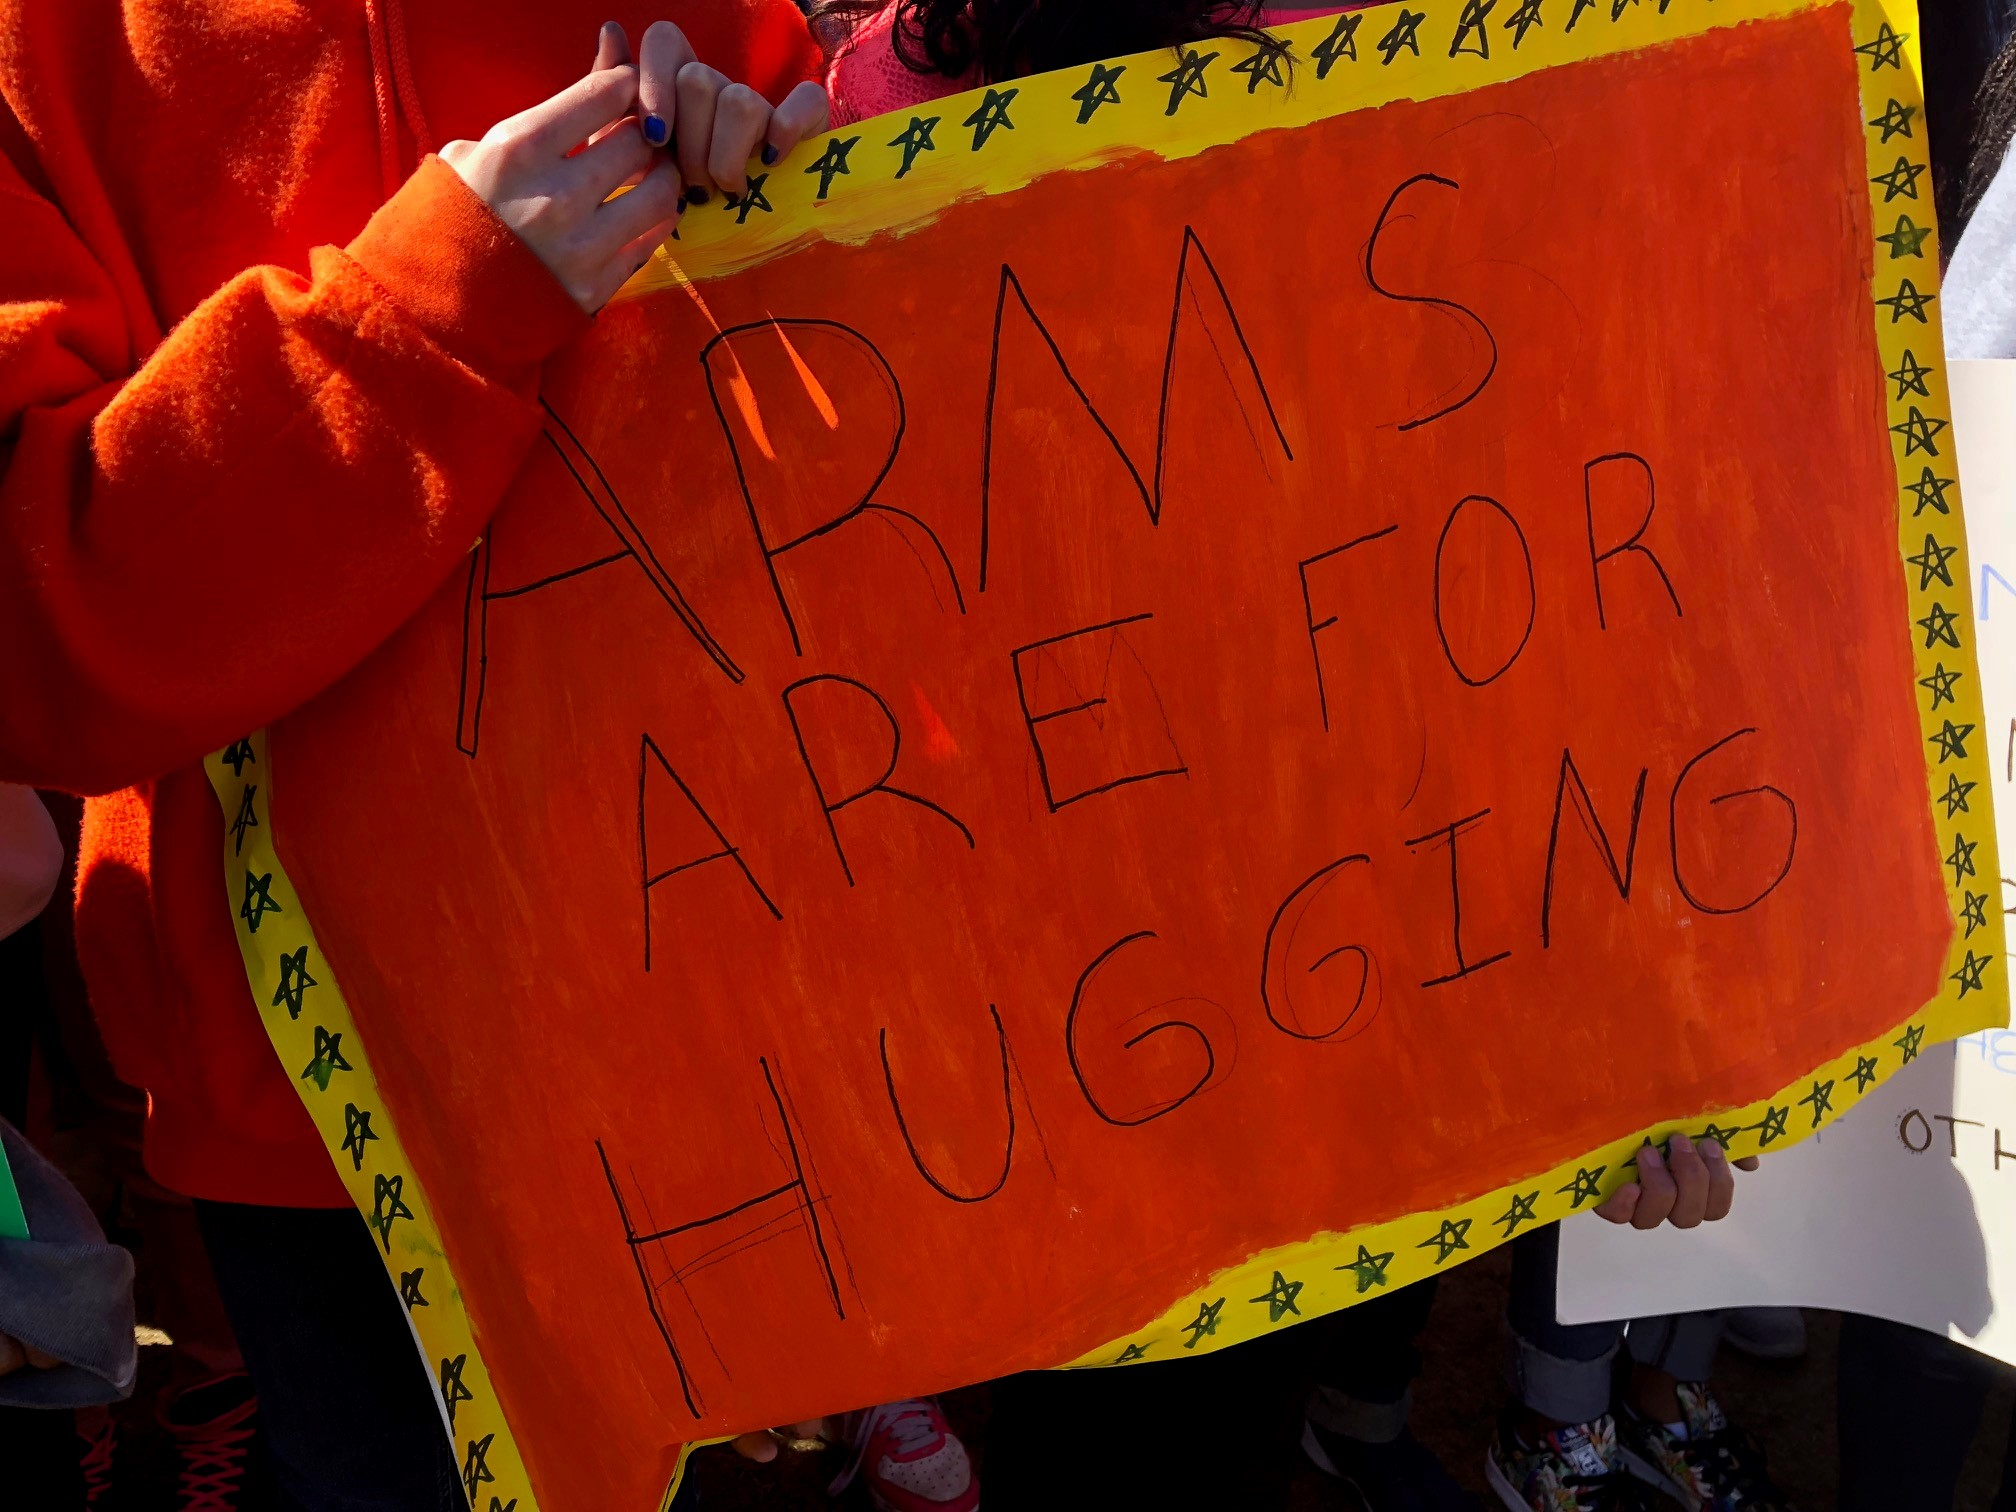 <div class='meta'><div class='origin-logo' data-origin='WLS'></div><span class='caption-text' data-credit=''>A Chicago student holds a sign during a walkout to protest gun violence on the anniversary of the Columbine shooting.</span></div>